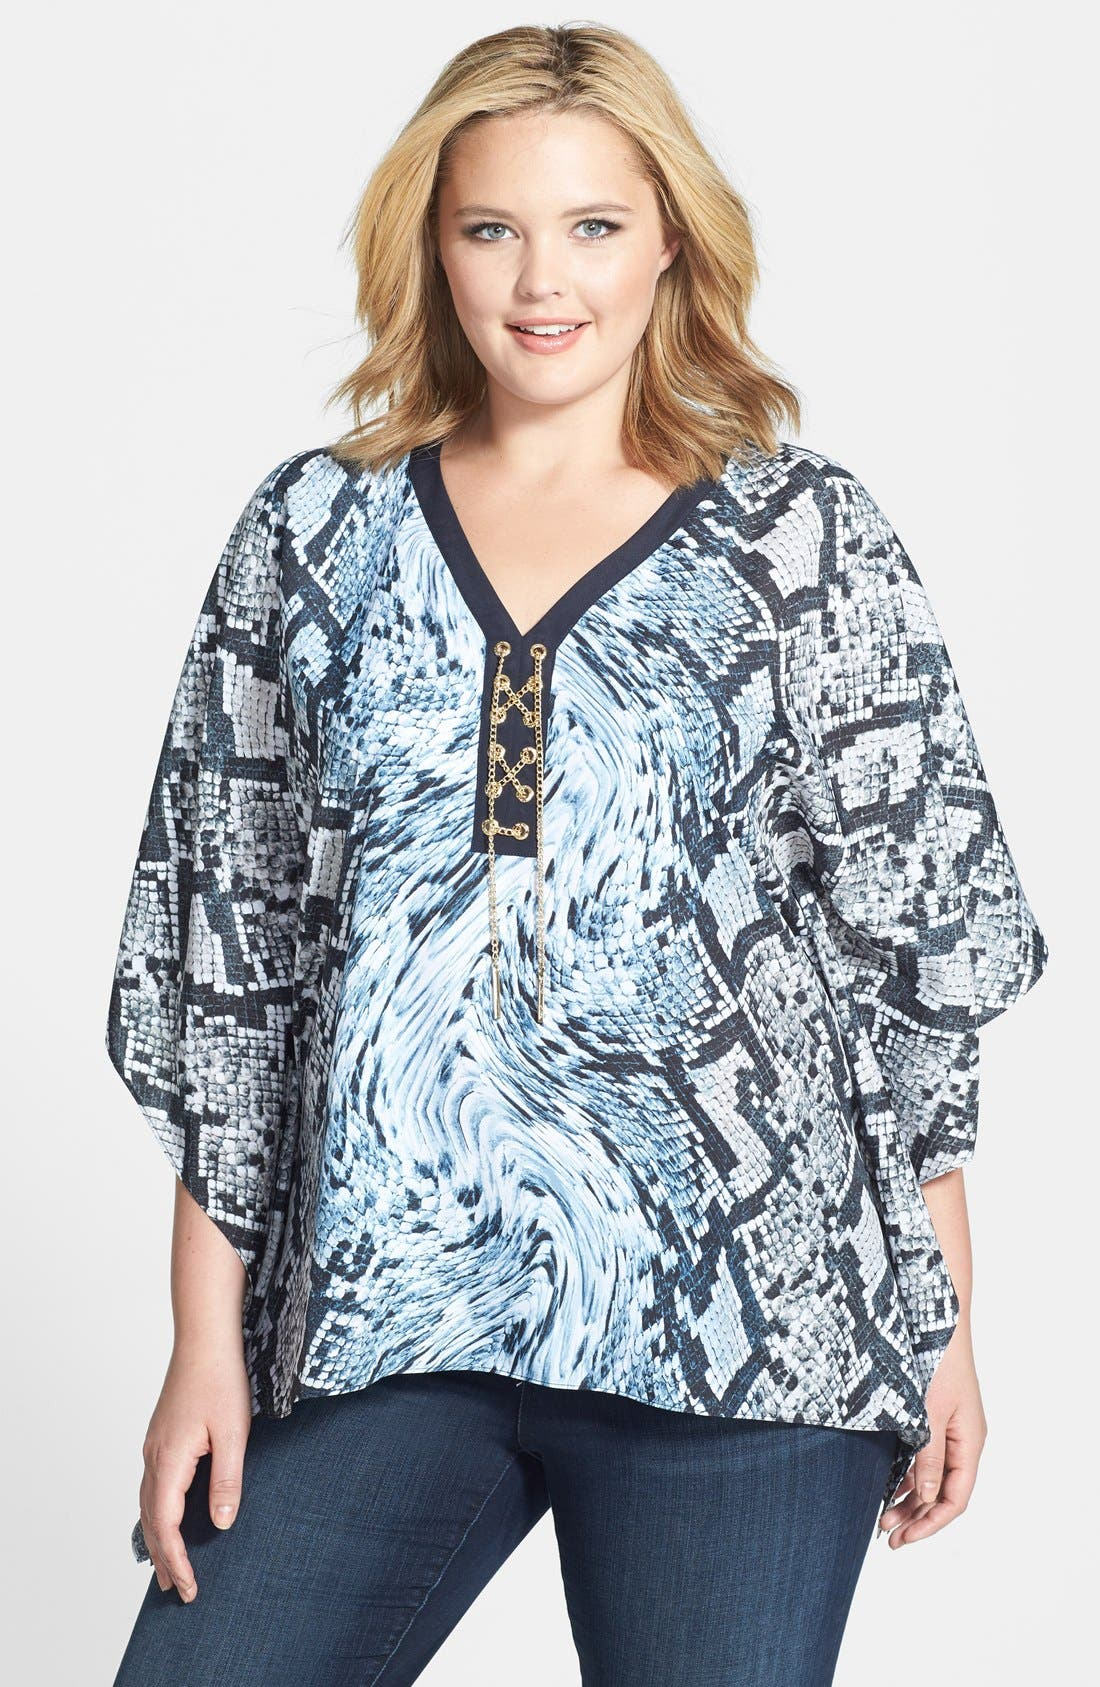 Alternate Image 1 Selected - MICHAEL Michael Kors 'Swirl Snake' Chain Lace-Up Poncho Top (Plus Size)